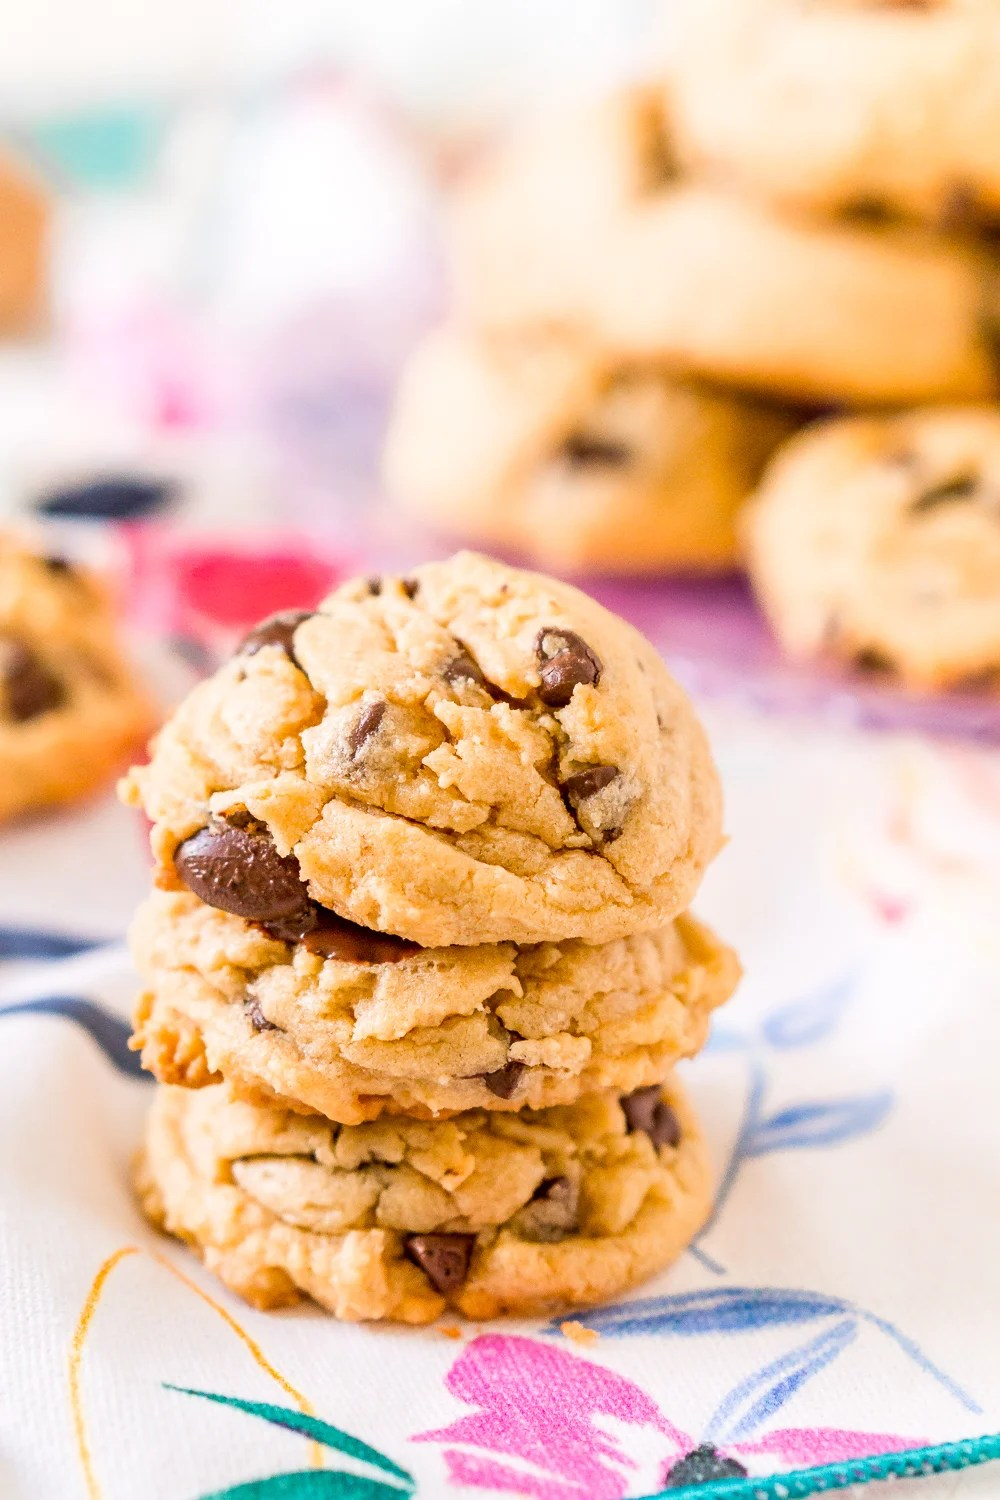 These Peanut Butter Chocolate Chip Cookies are soft and chewy and made with peanut butter, chocolate chips, vanilla pudding, brown sugar, and more!